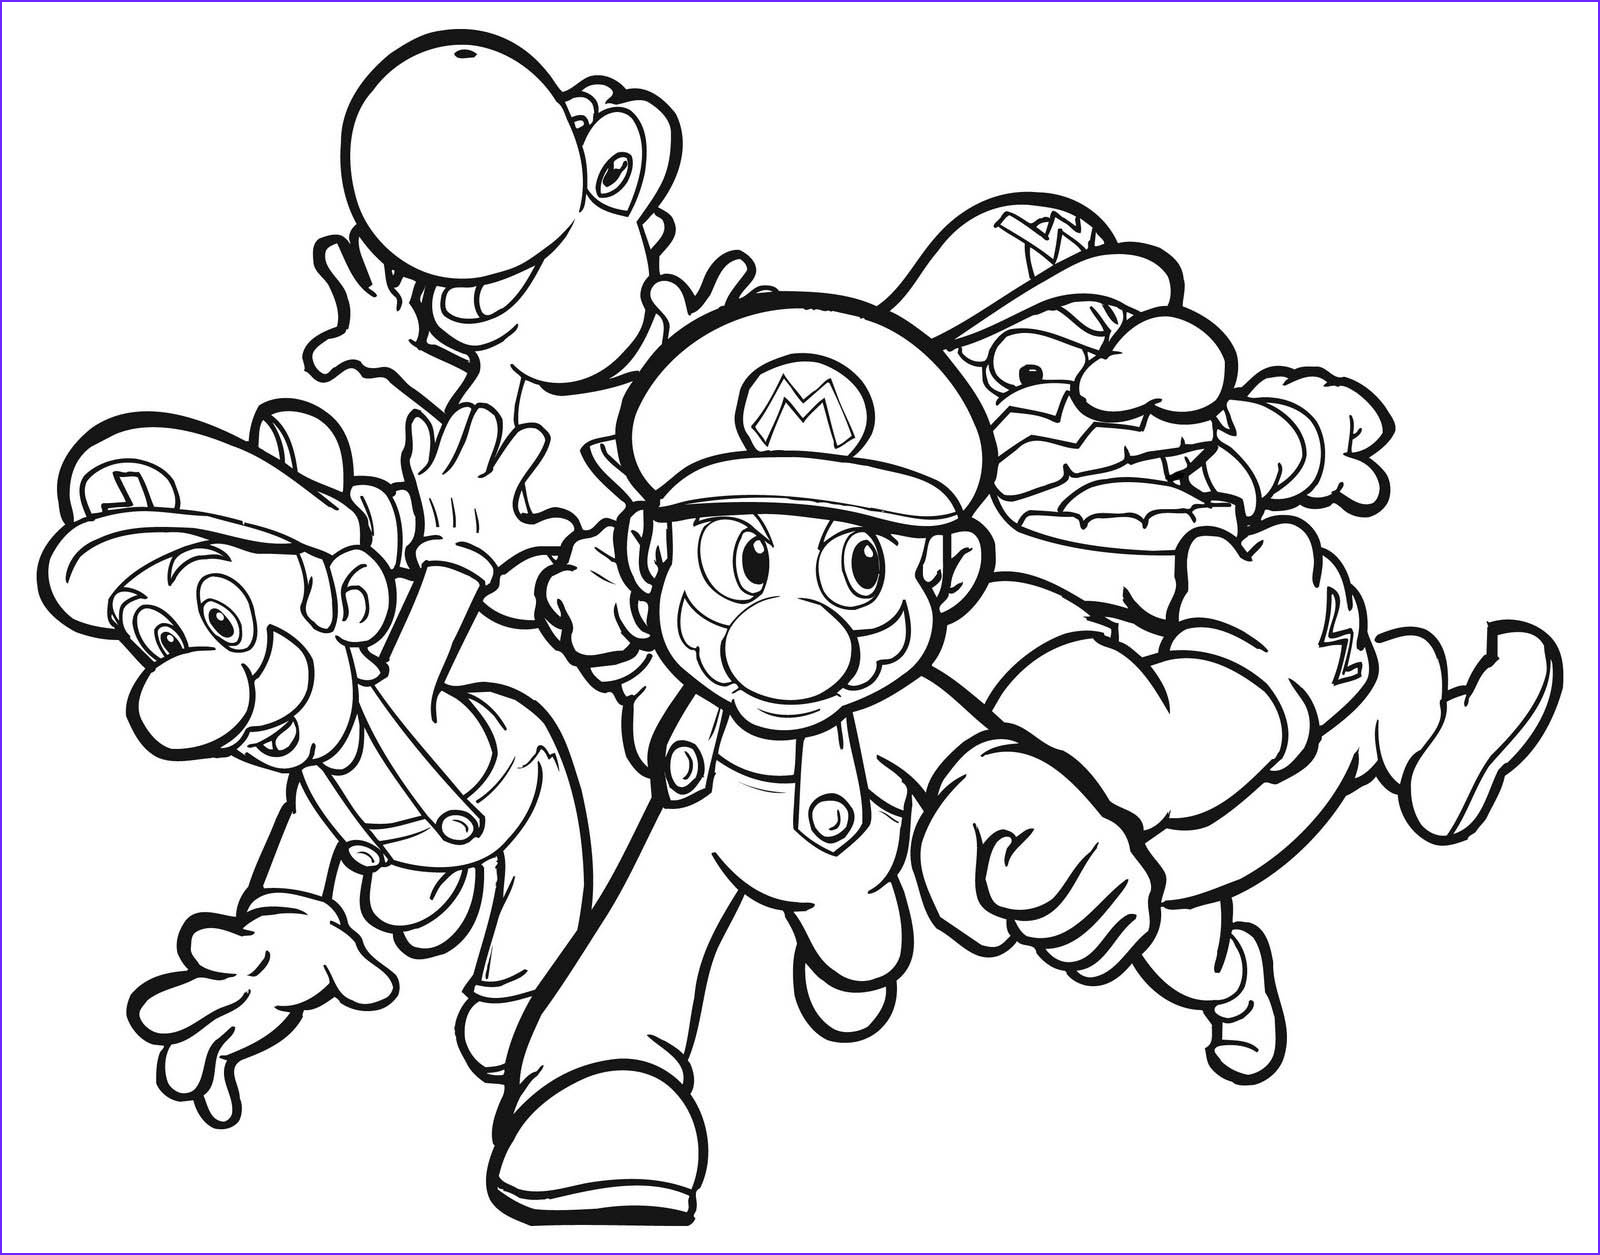 Coloring Pics Cool Photos Mario Kart Coloring Pages Best Coloring Pages for Kids